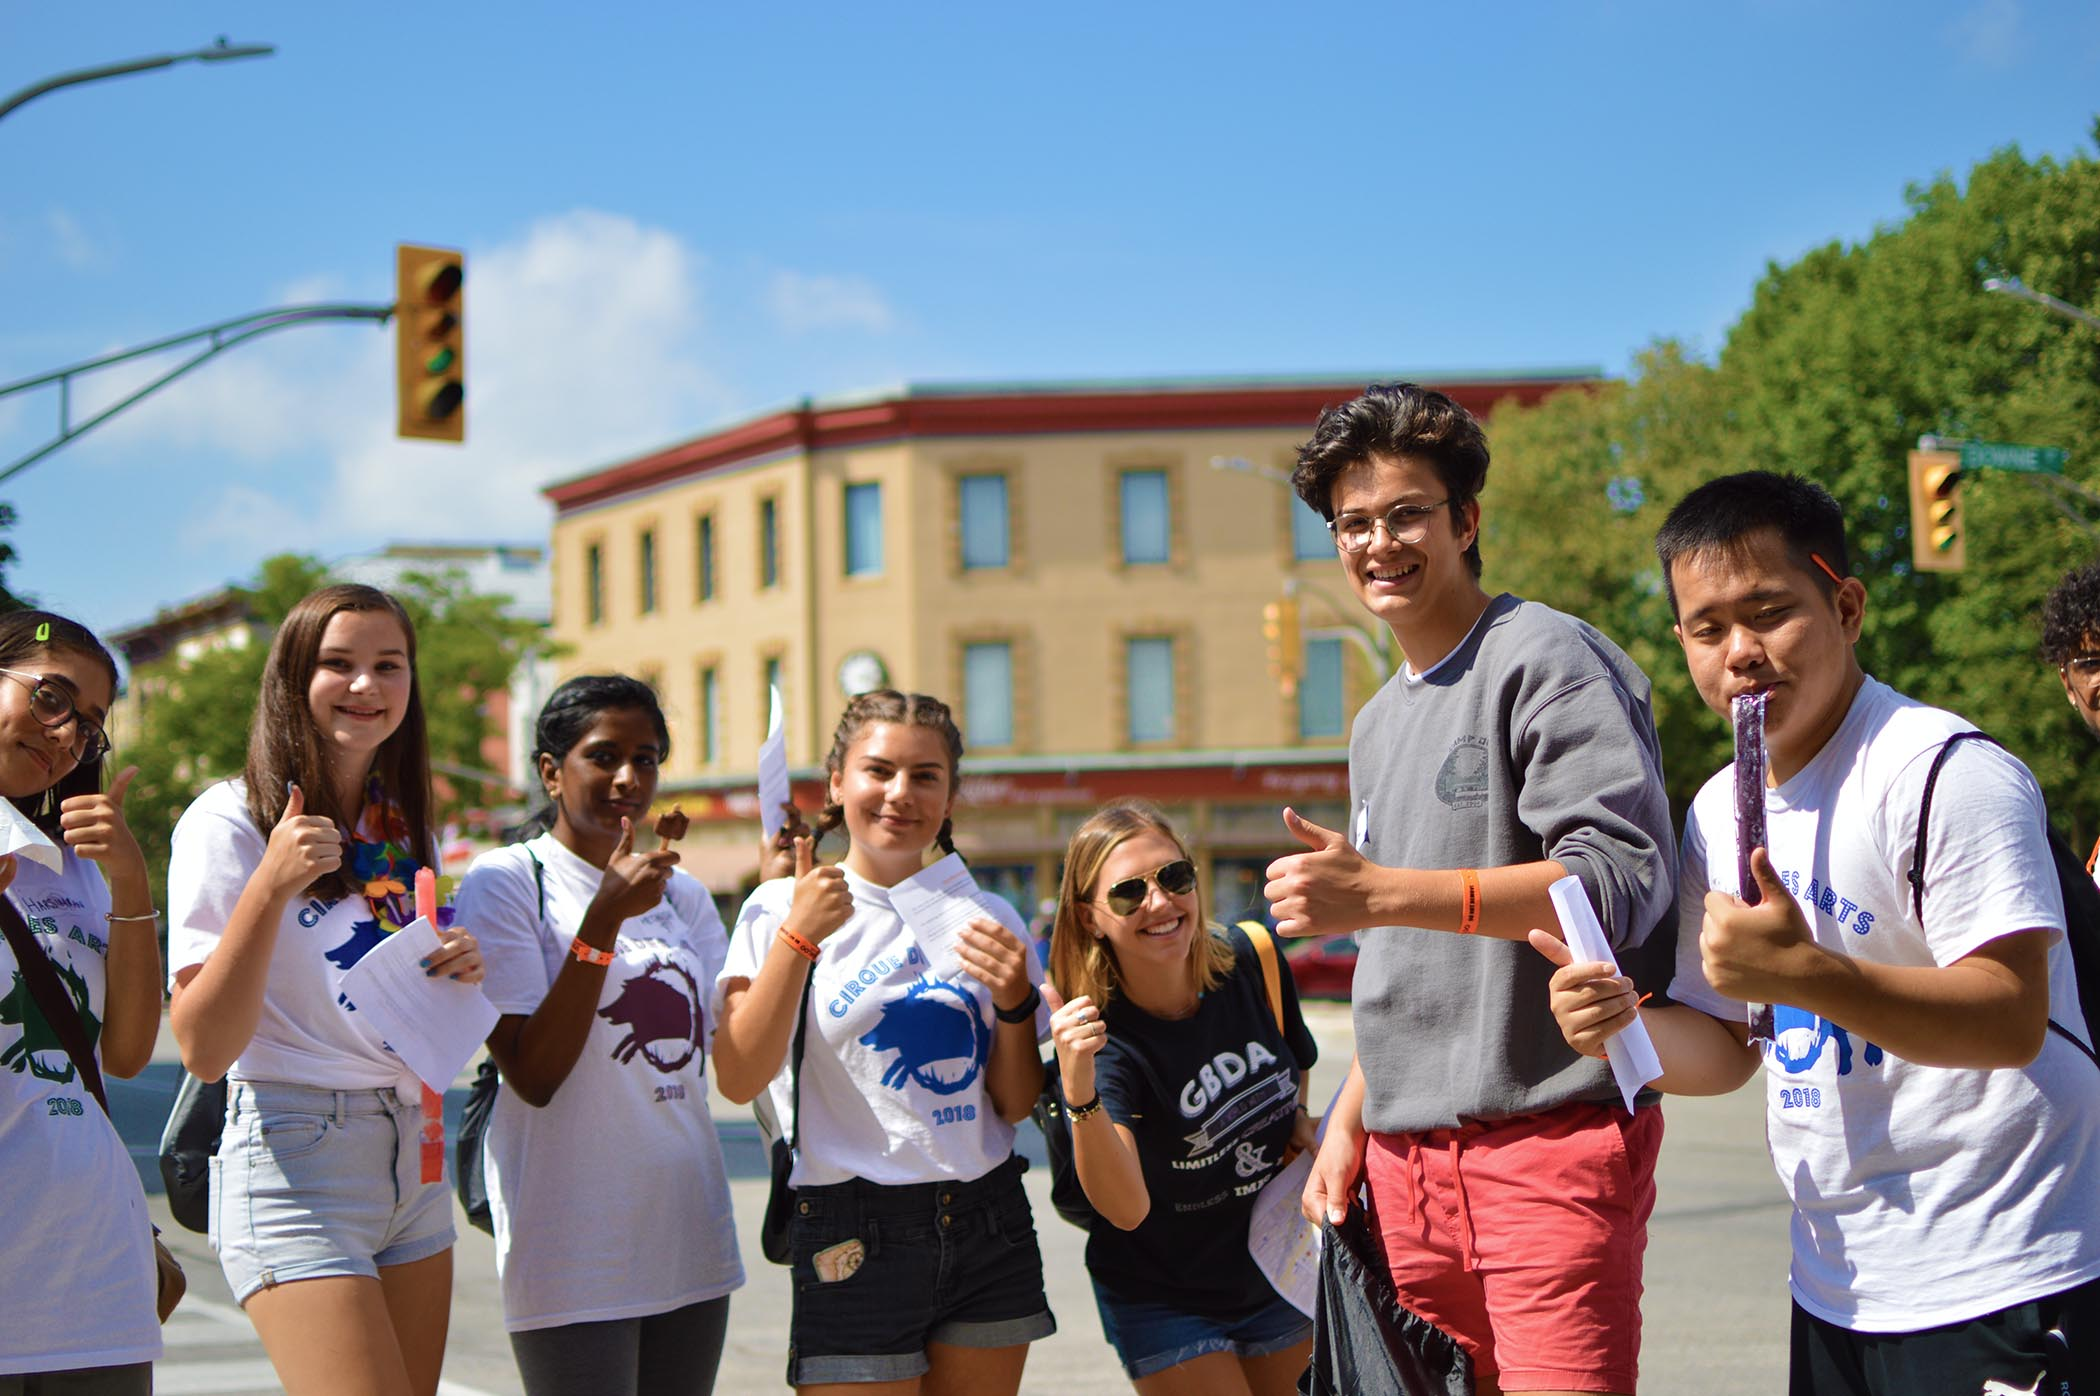 New students giving thumbs-up downtown Stratford